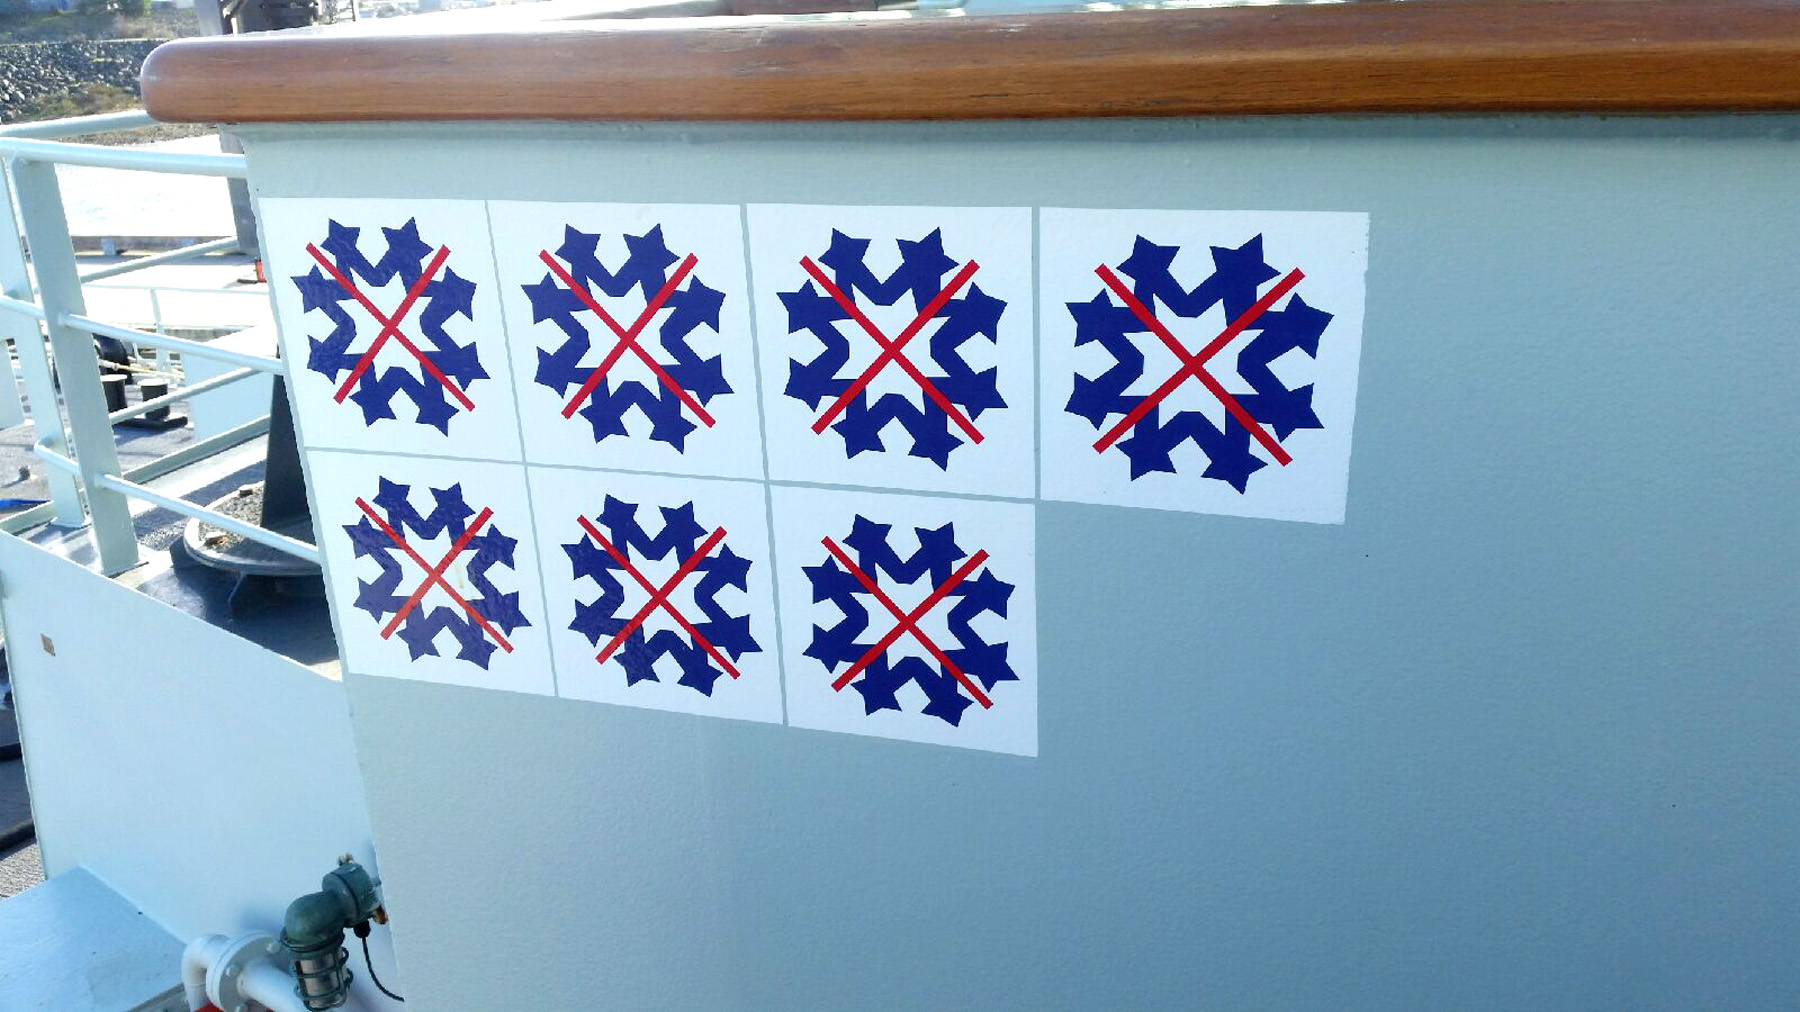 The seven snowflakes earned by HMCS Edmonton are displayed on the ship's bridge wing.